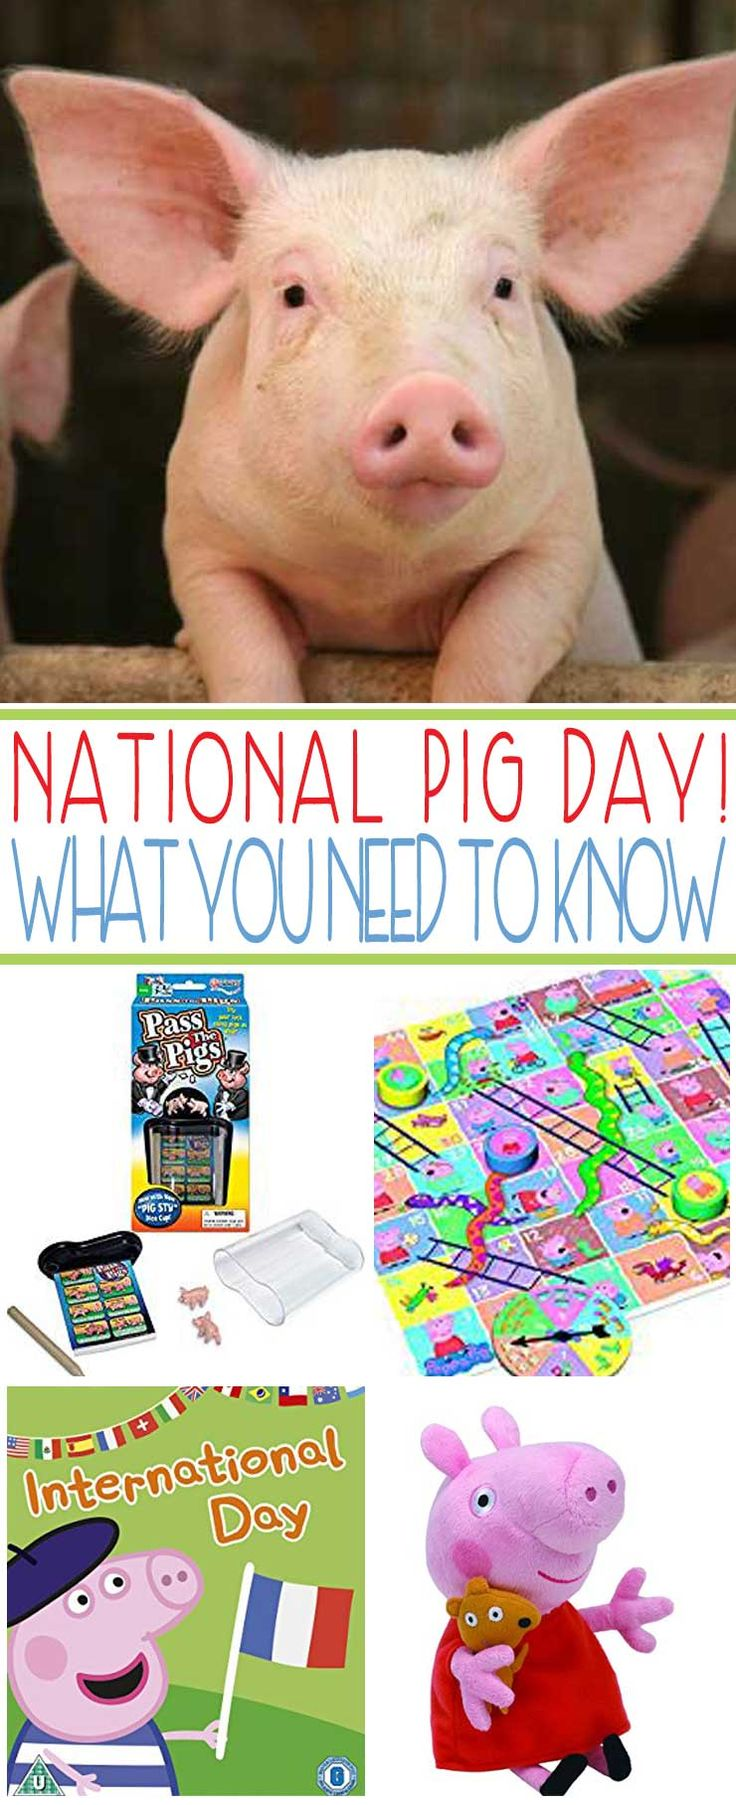 Thought you were familiar with all our nation's holidays? Get ready to ham it up on March 1st, in honor of National Pig Day.